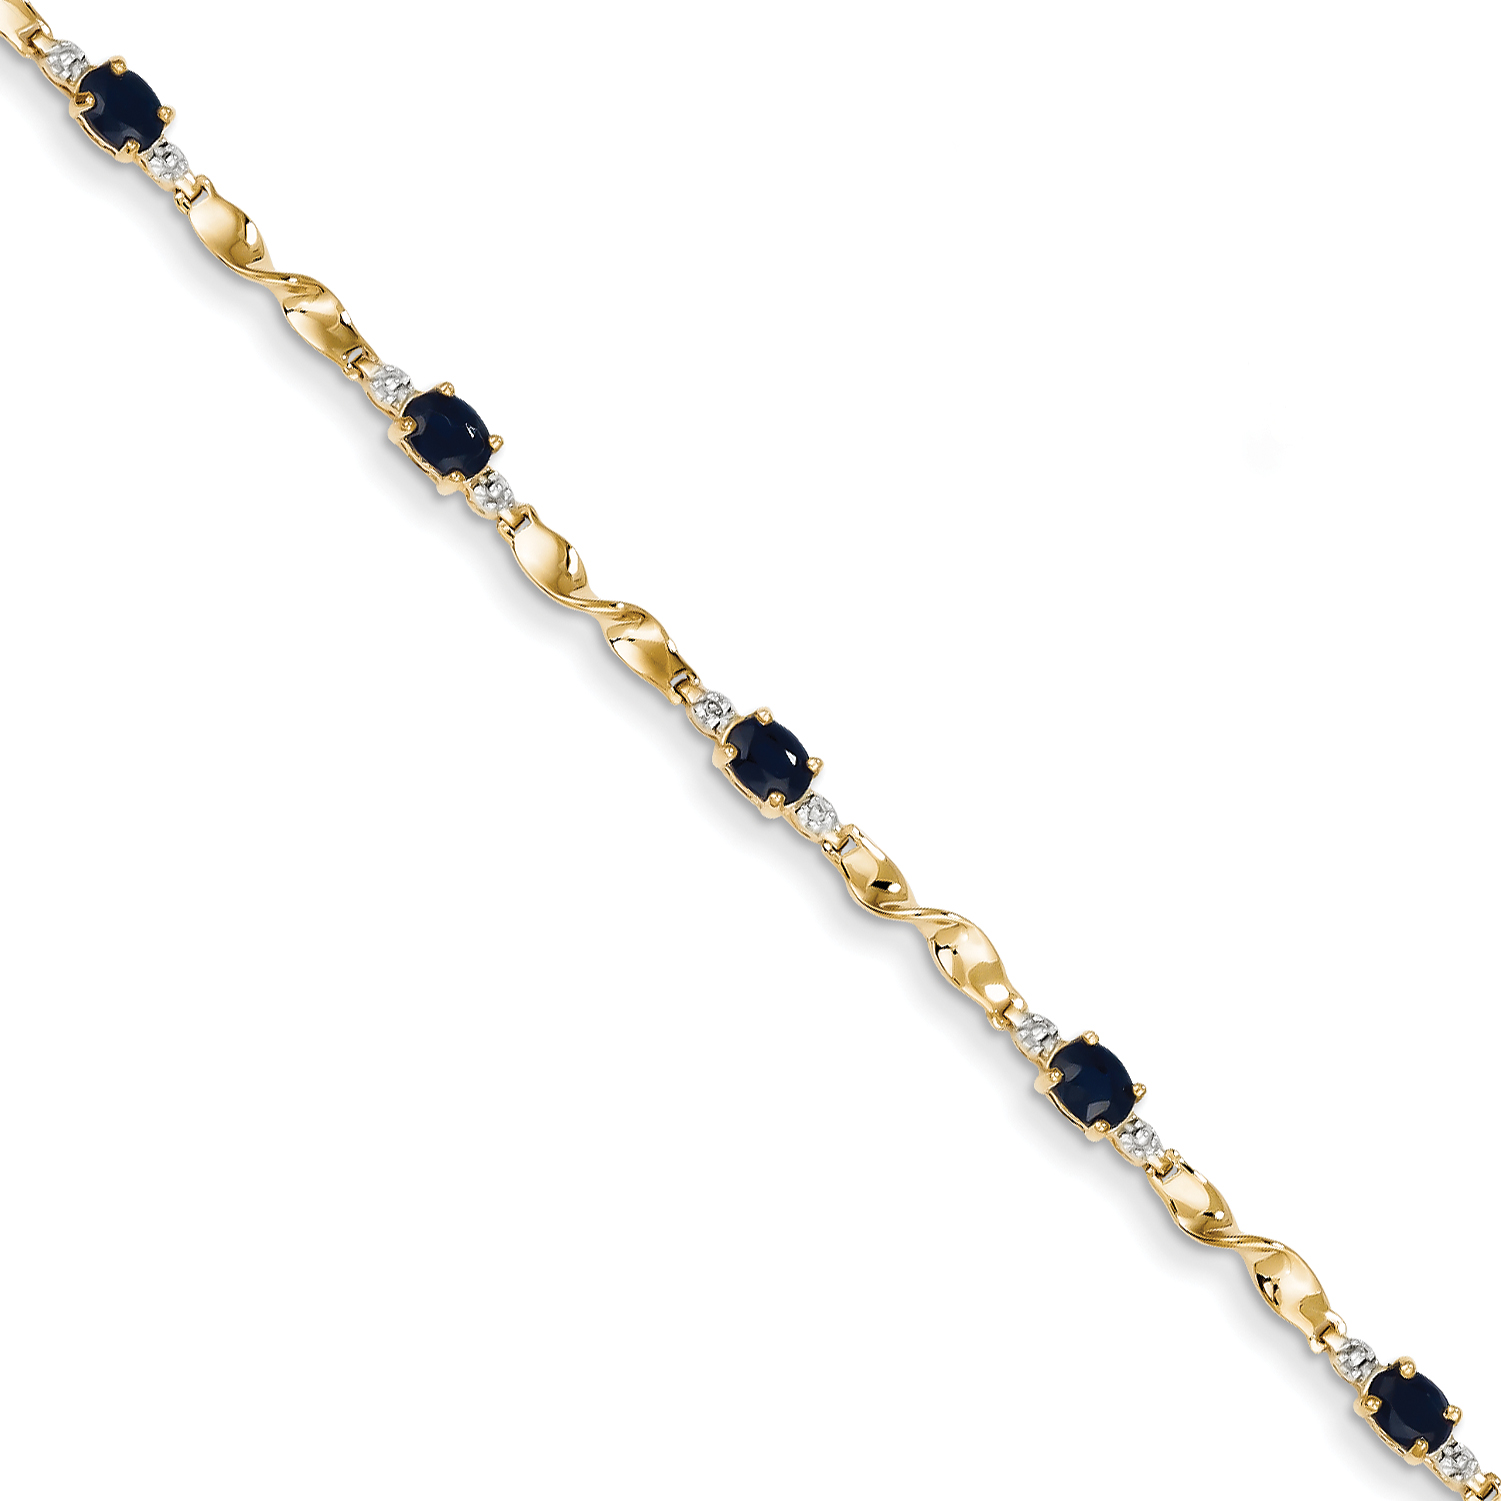 14k Yellow Gold Diamond and Sapphire Oval Bracelet by